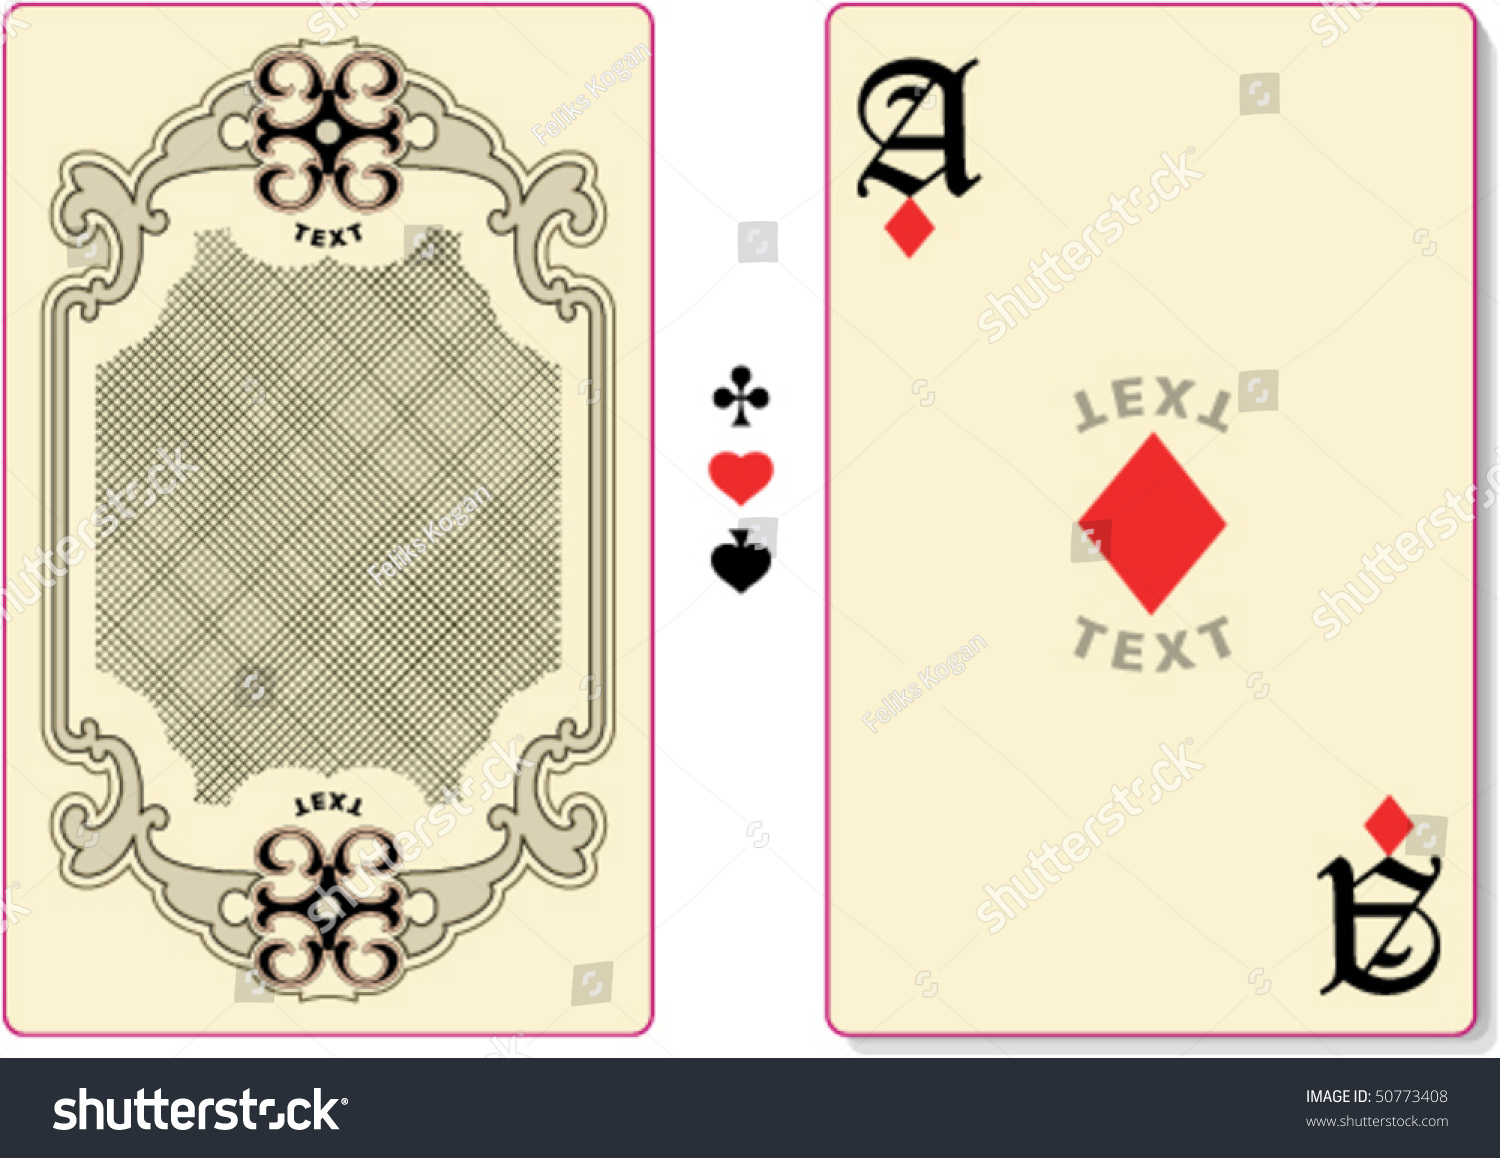 Playing card back template custom text stock vector 50773408 playing card with back also as a template for custom text pronofoot35fo Choice Image